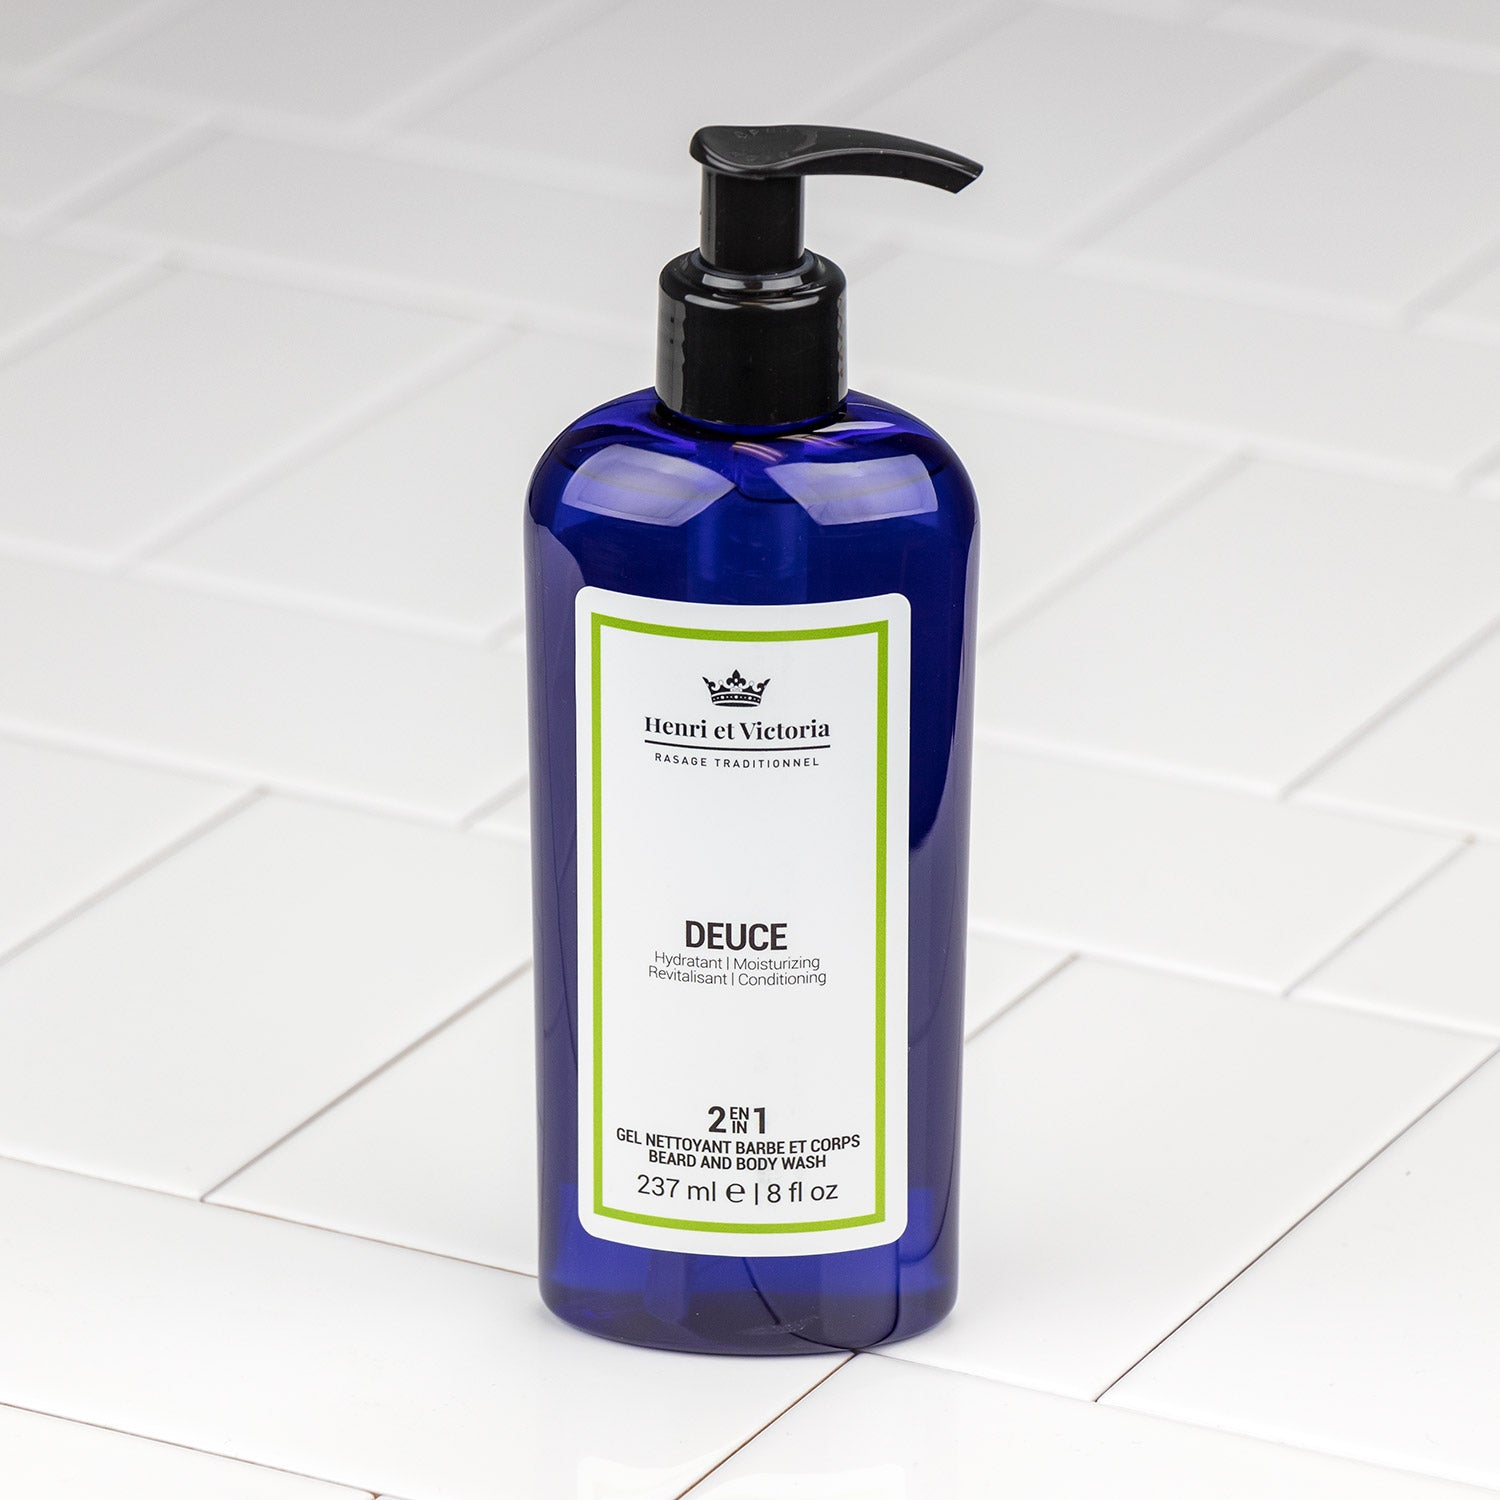 Henri et Victoria - Deuce Body and Beard Wash 8oz